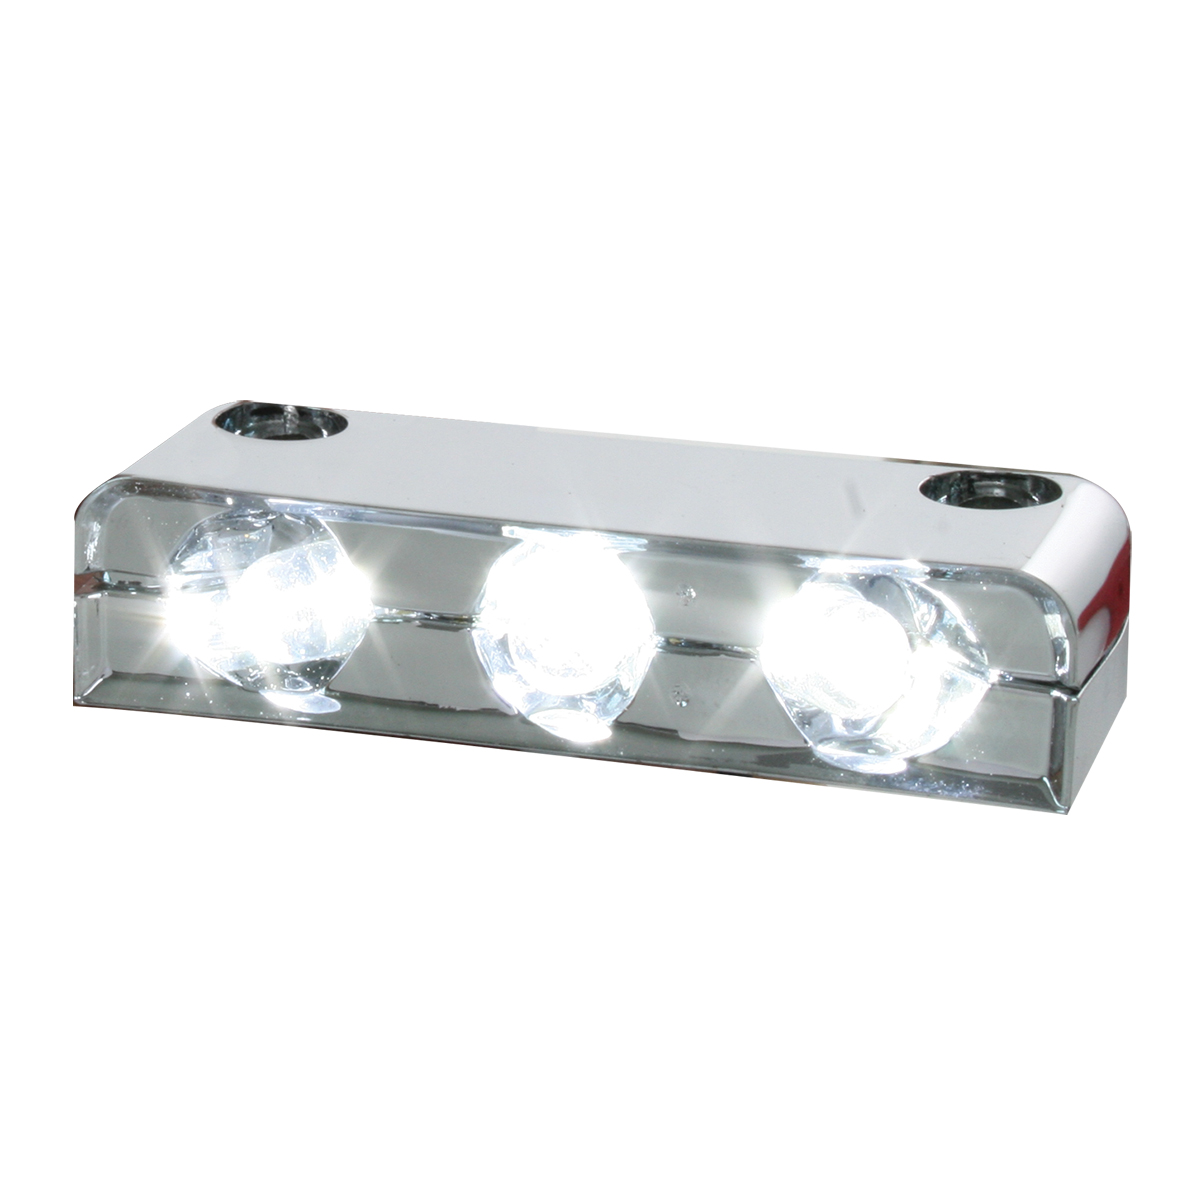 87404 White 3 LED Step Light w/ Chrome Housing